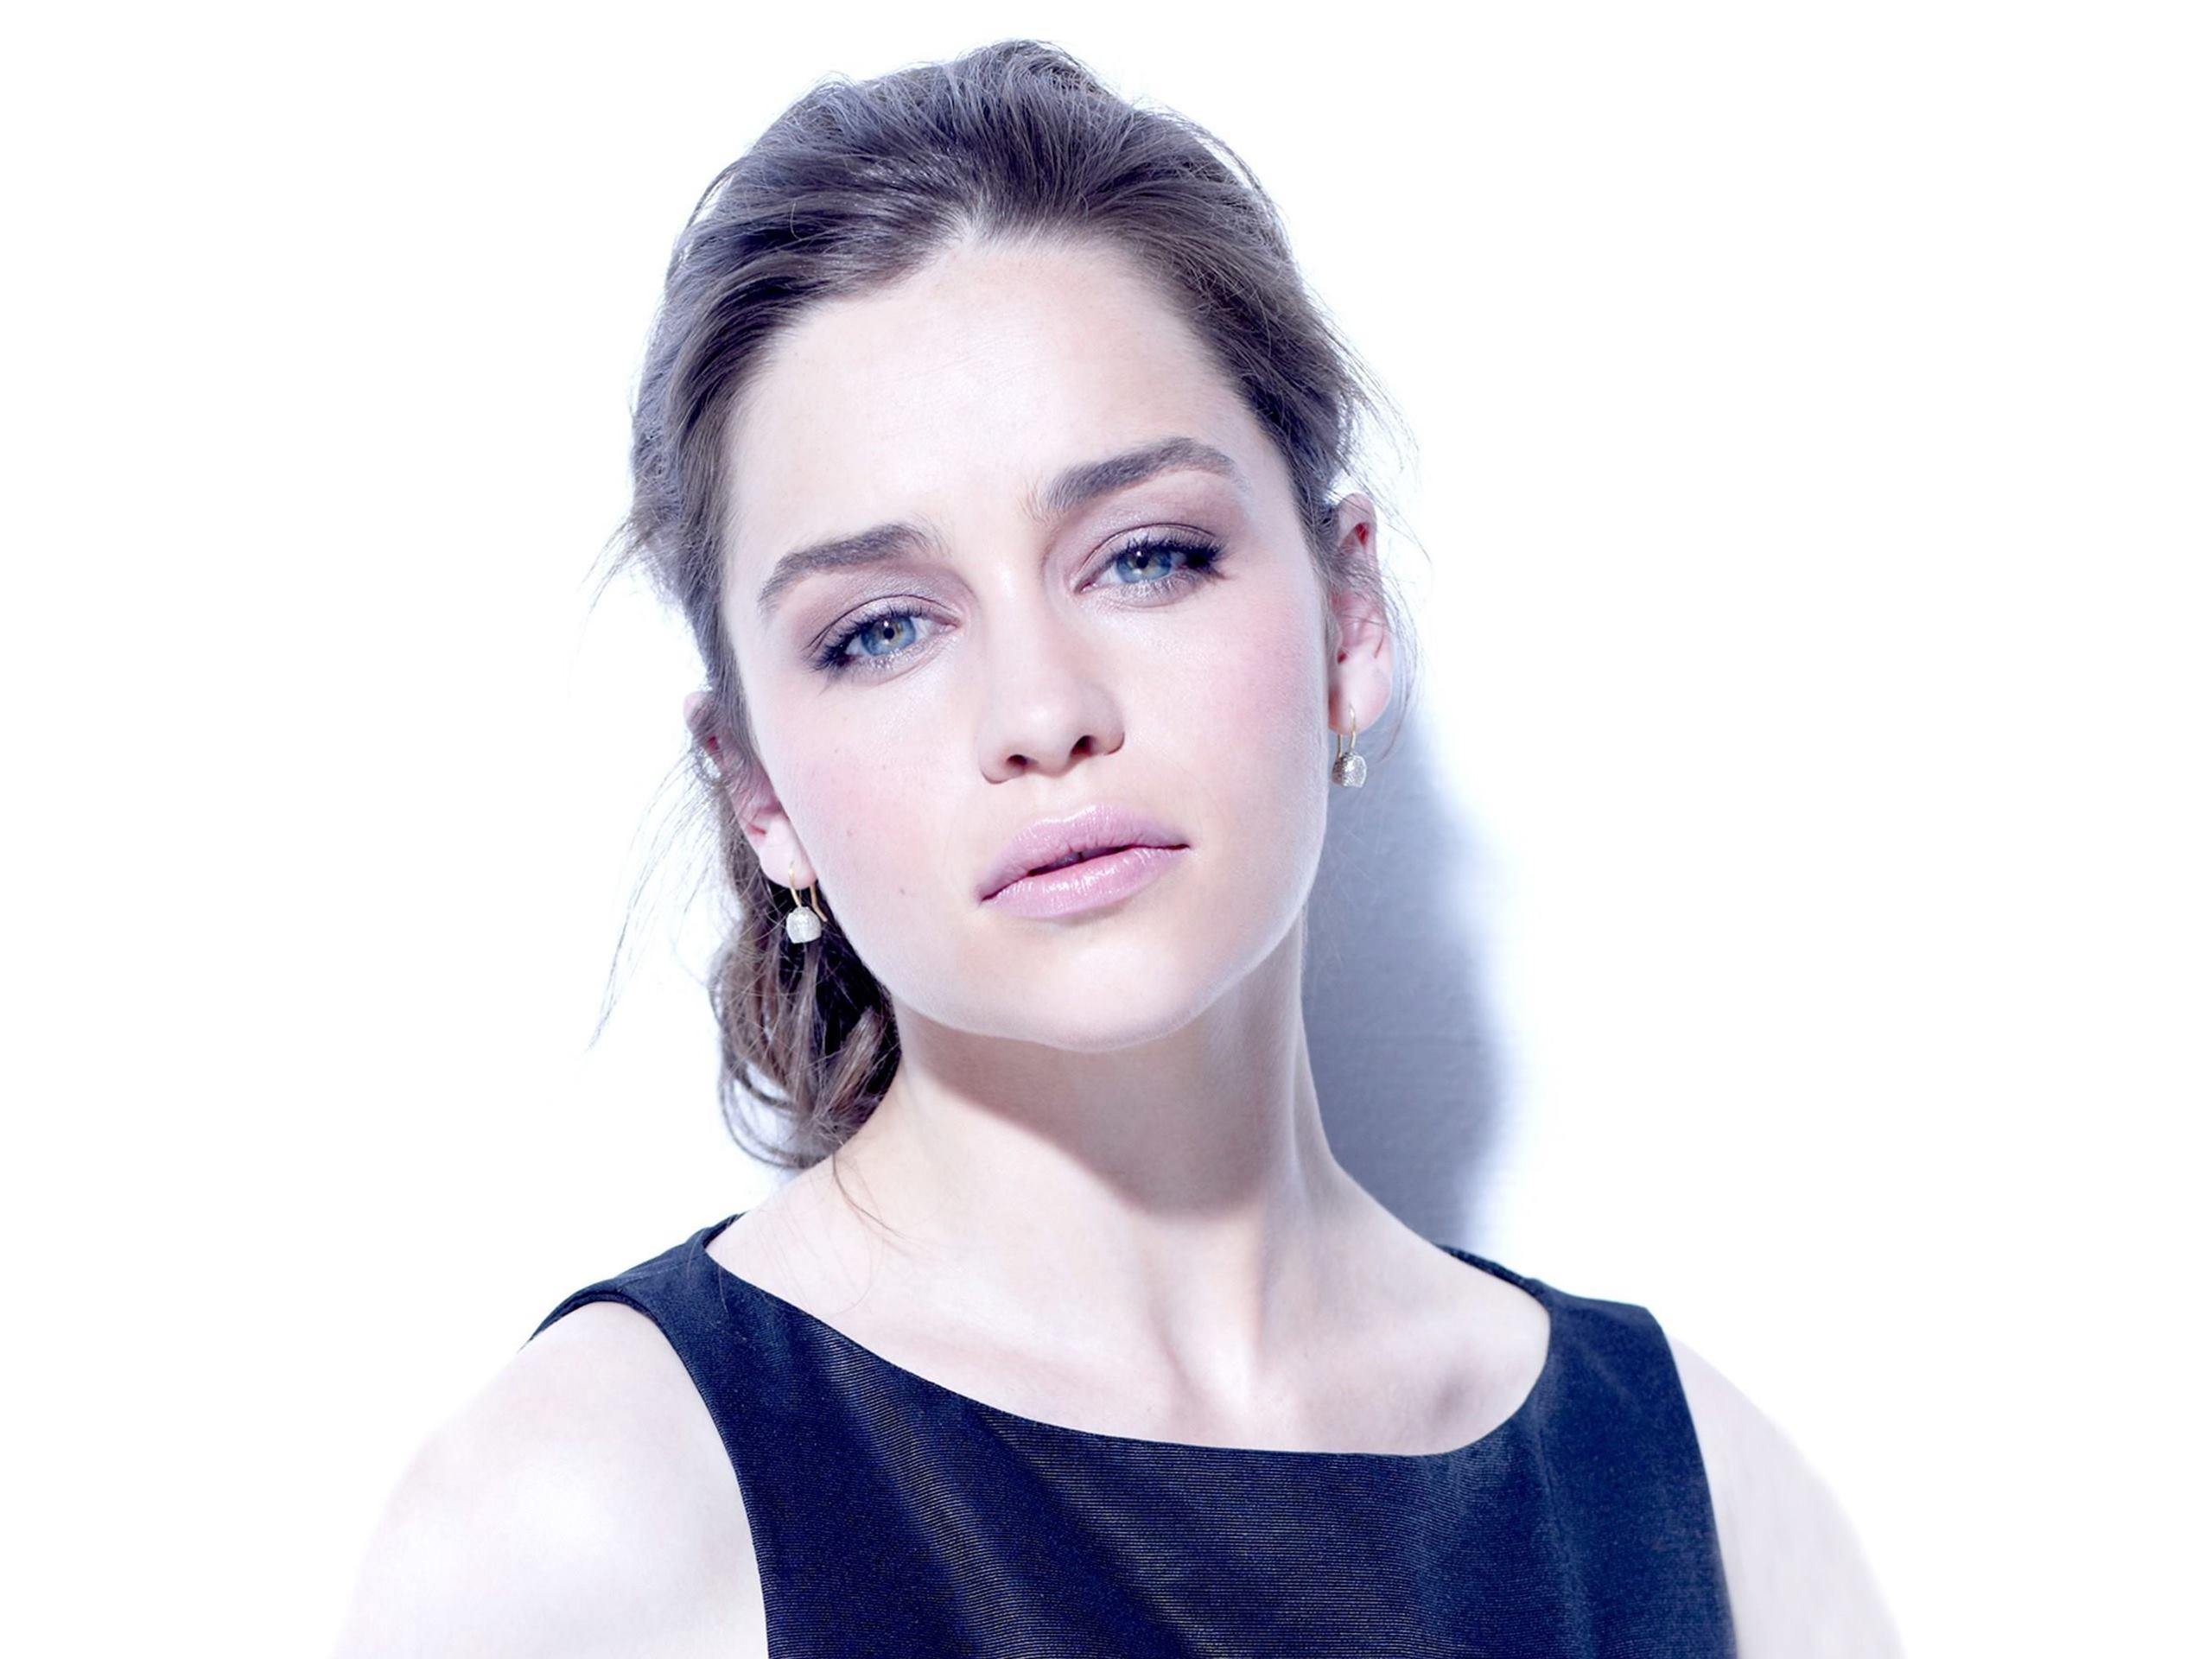 Lovely Emilia Clarke Cute Attractive Face Still Free Desktop Mobile Hd Background Pictures